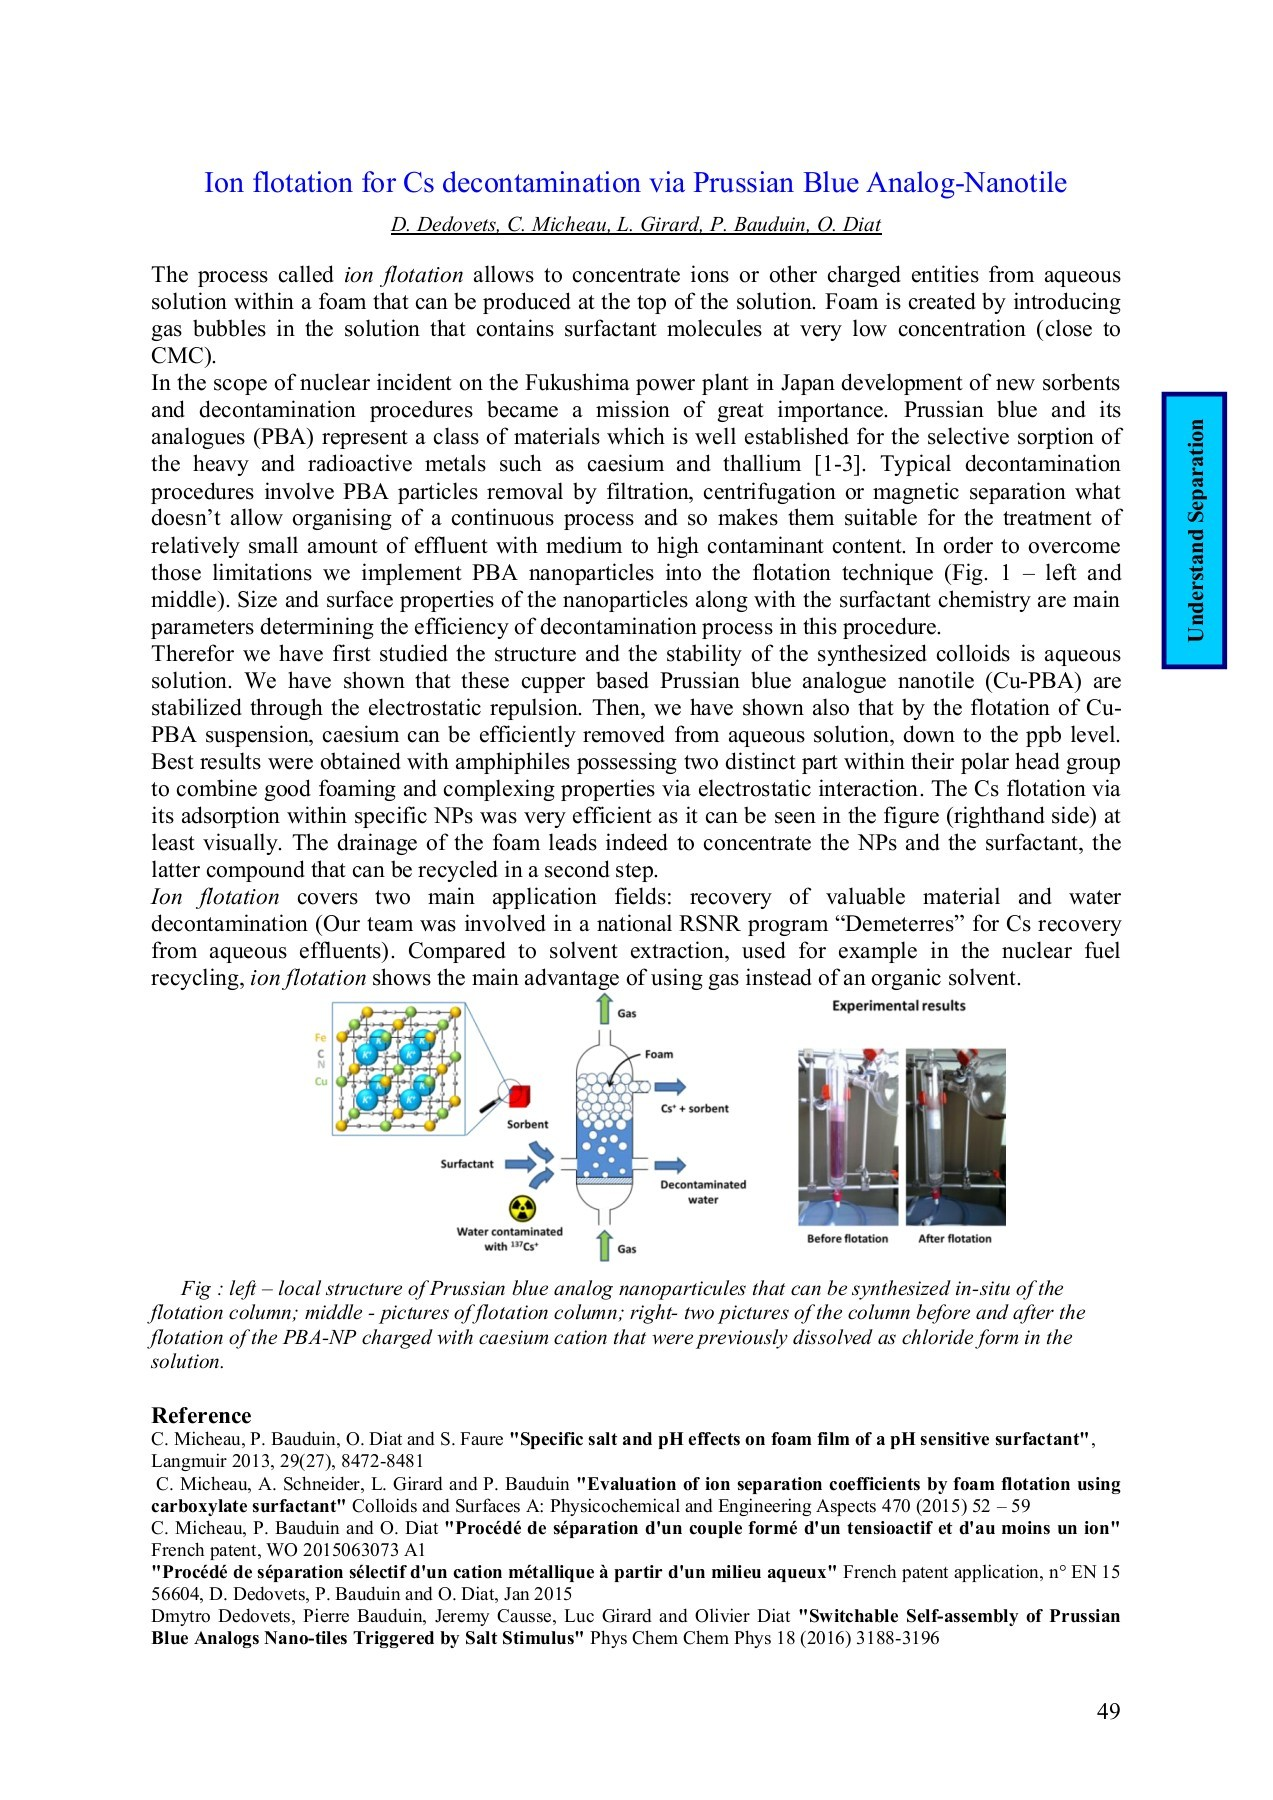 hight resolution of scientific report icsm 2013 2016 pages 51 100 text version fliphtml5